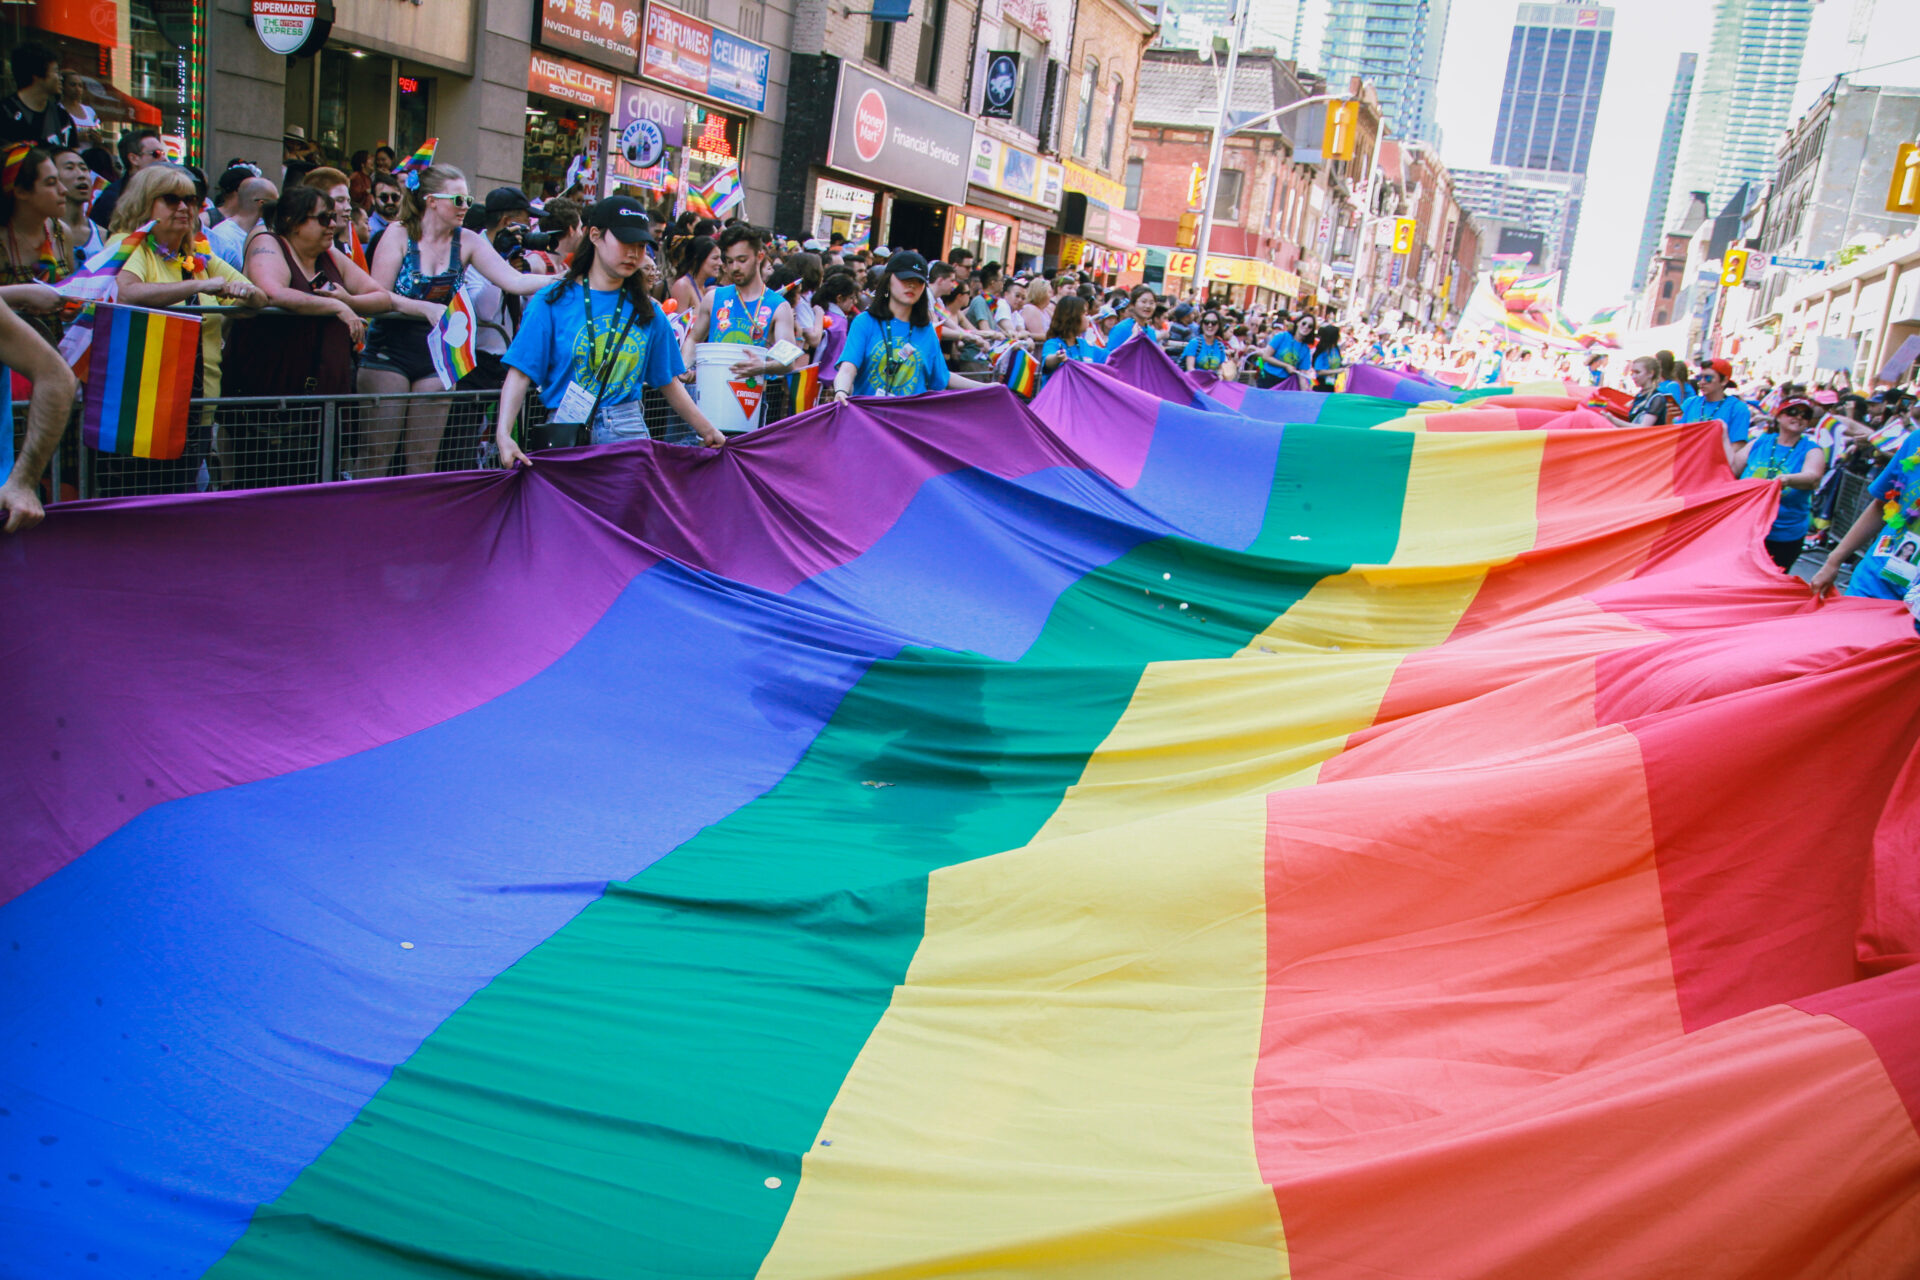 The Pride Flag being walked through the parade